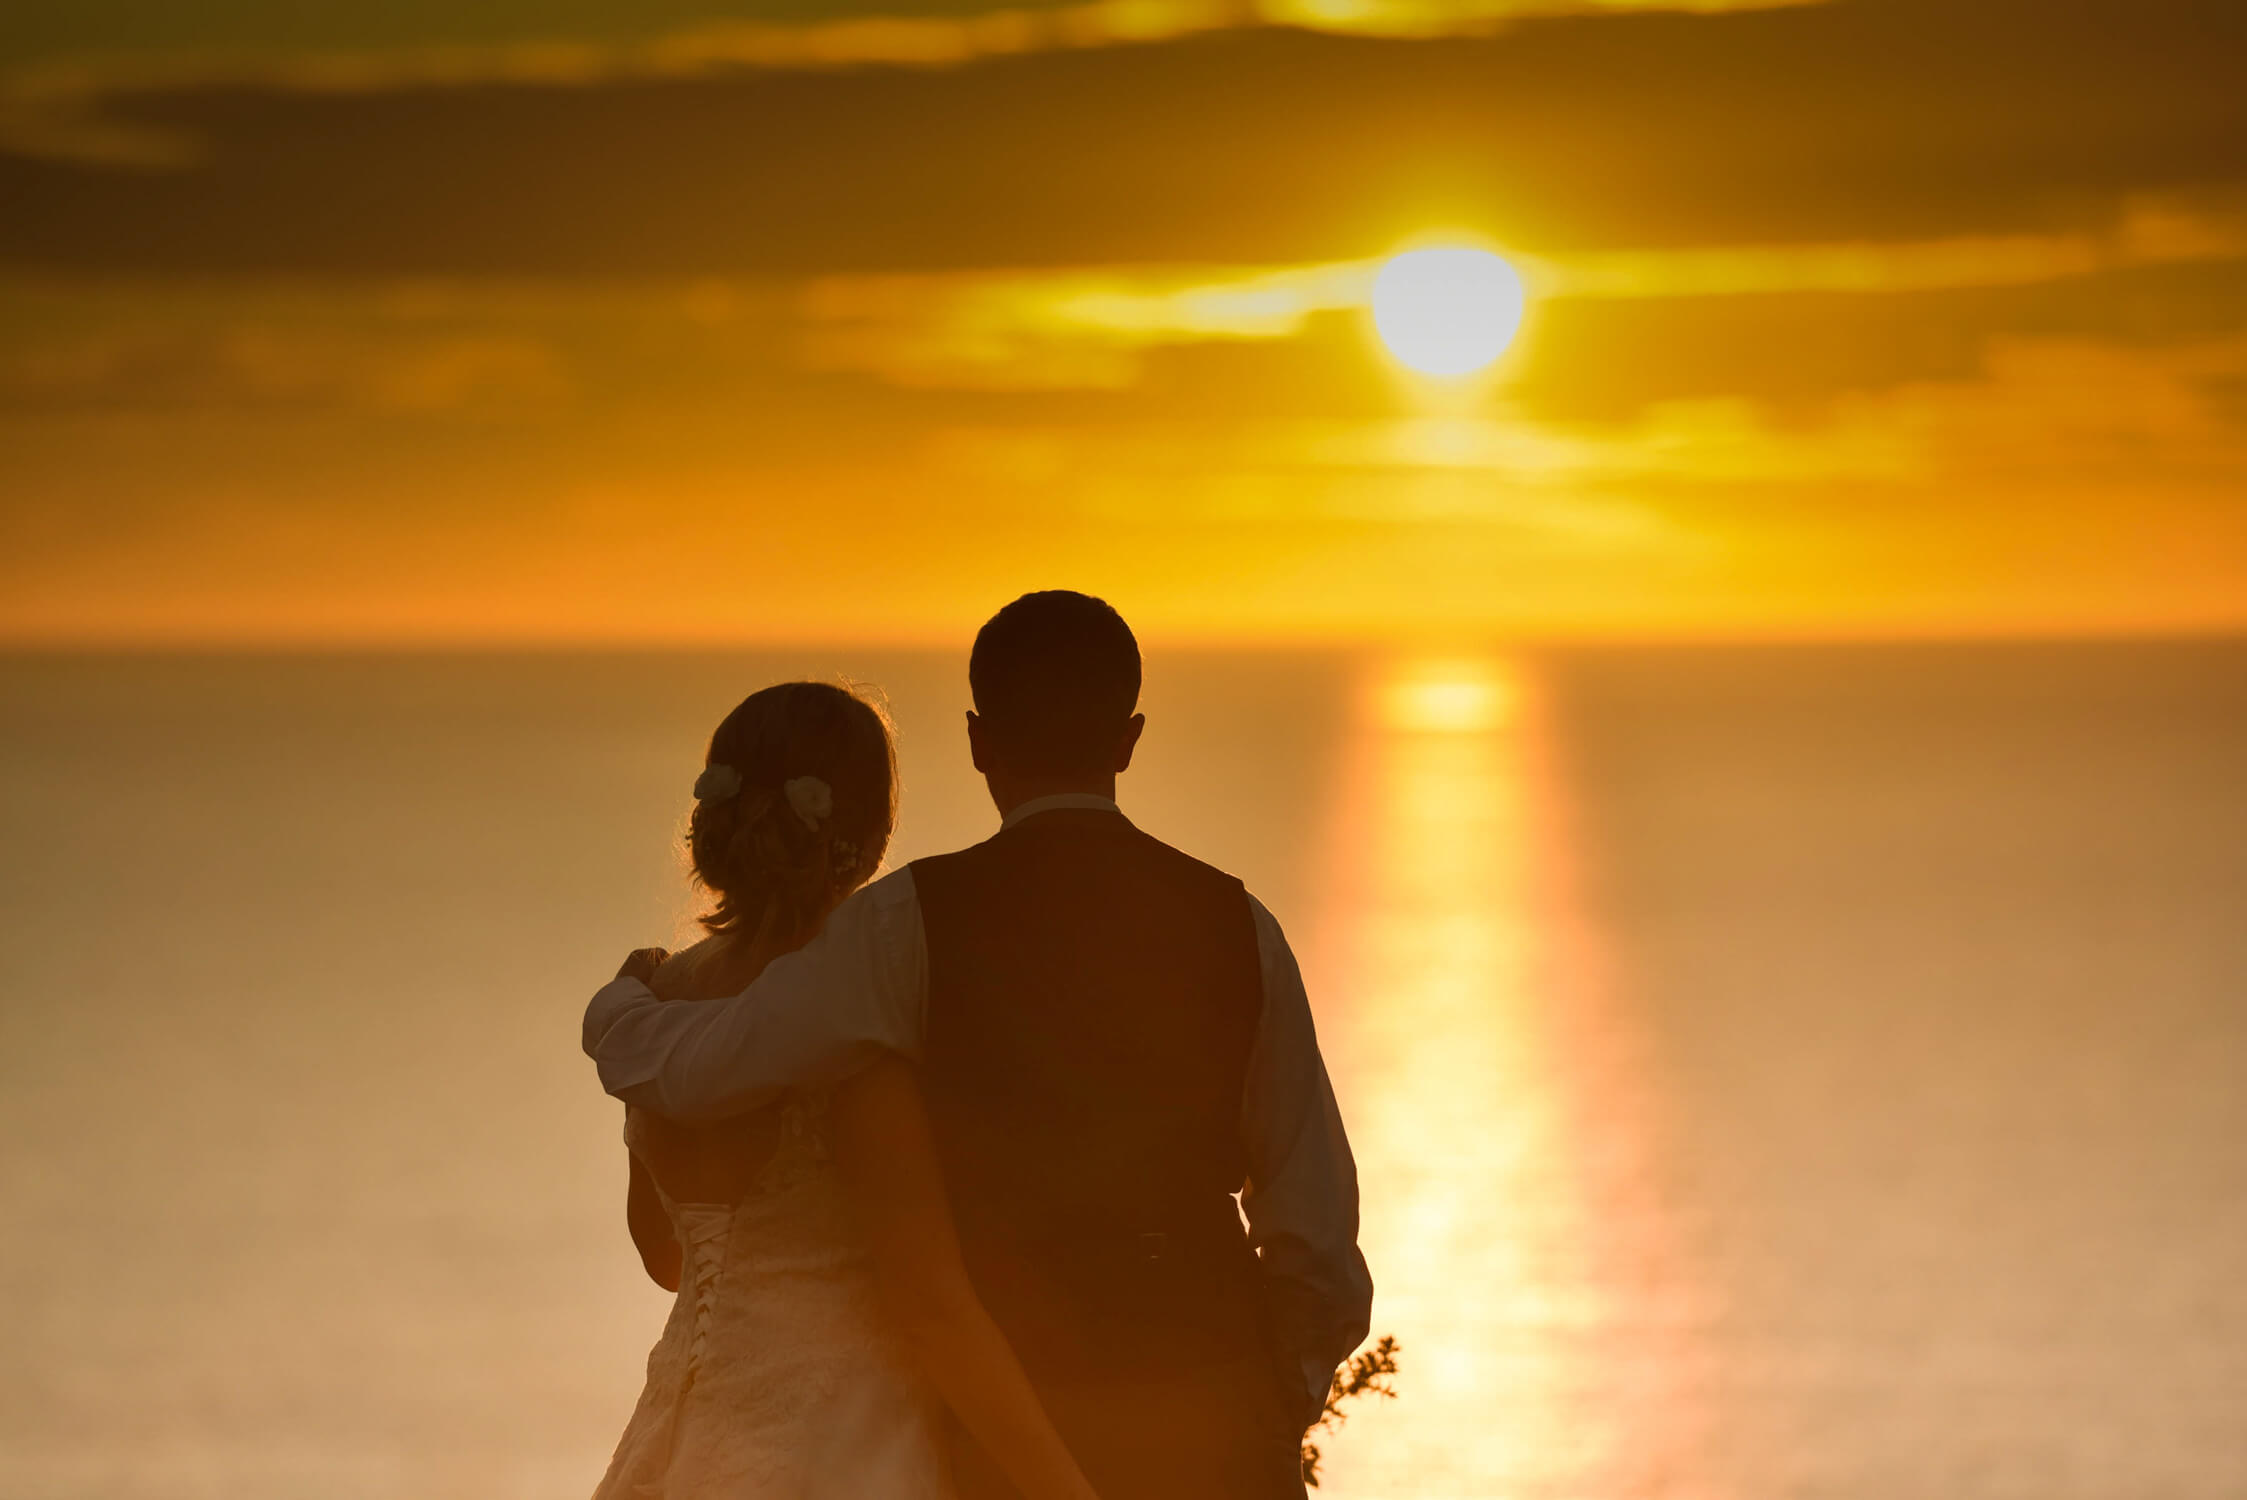 Bride & groom enjoying sunset at ocean Kave westward Ho! Ocean Cave, Devon wedding photographer